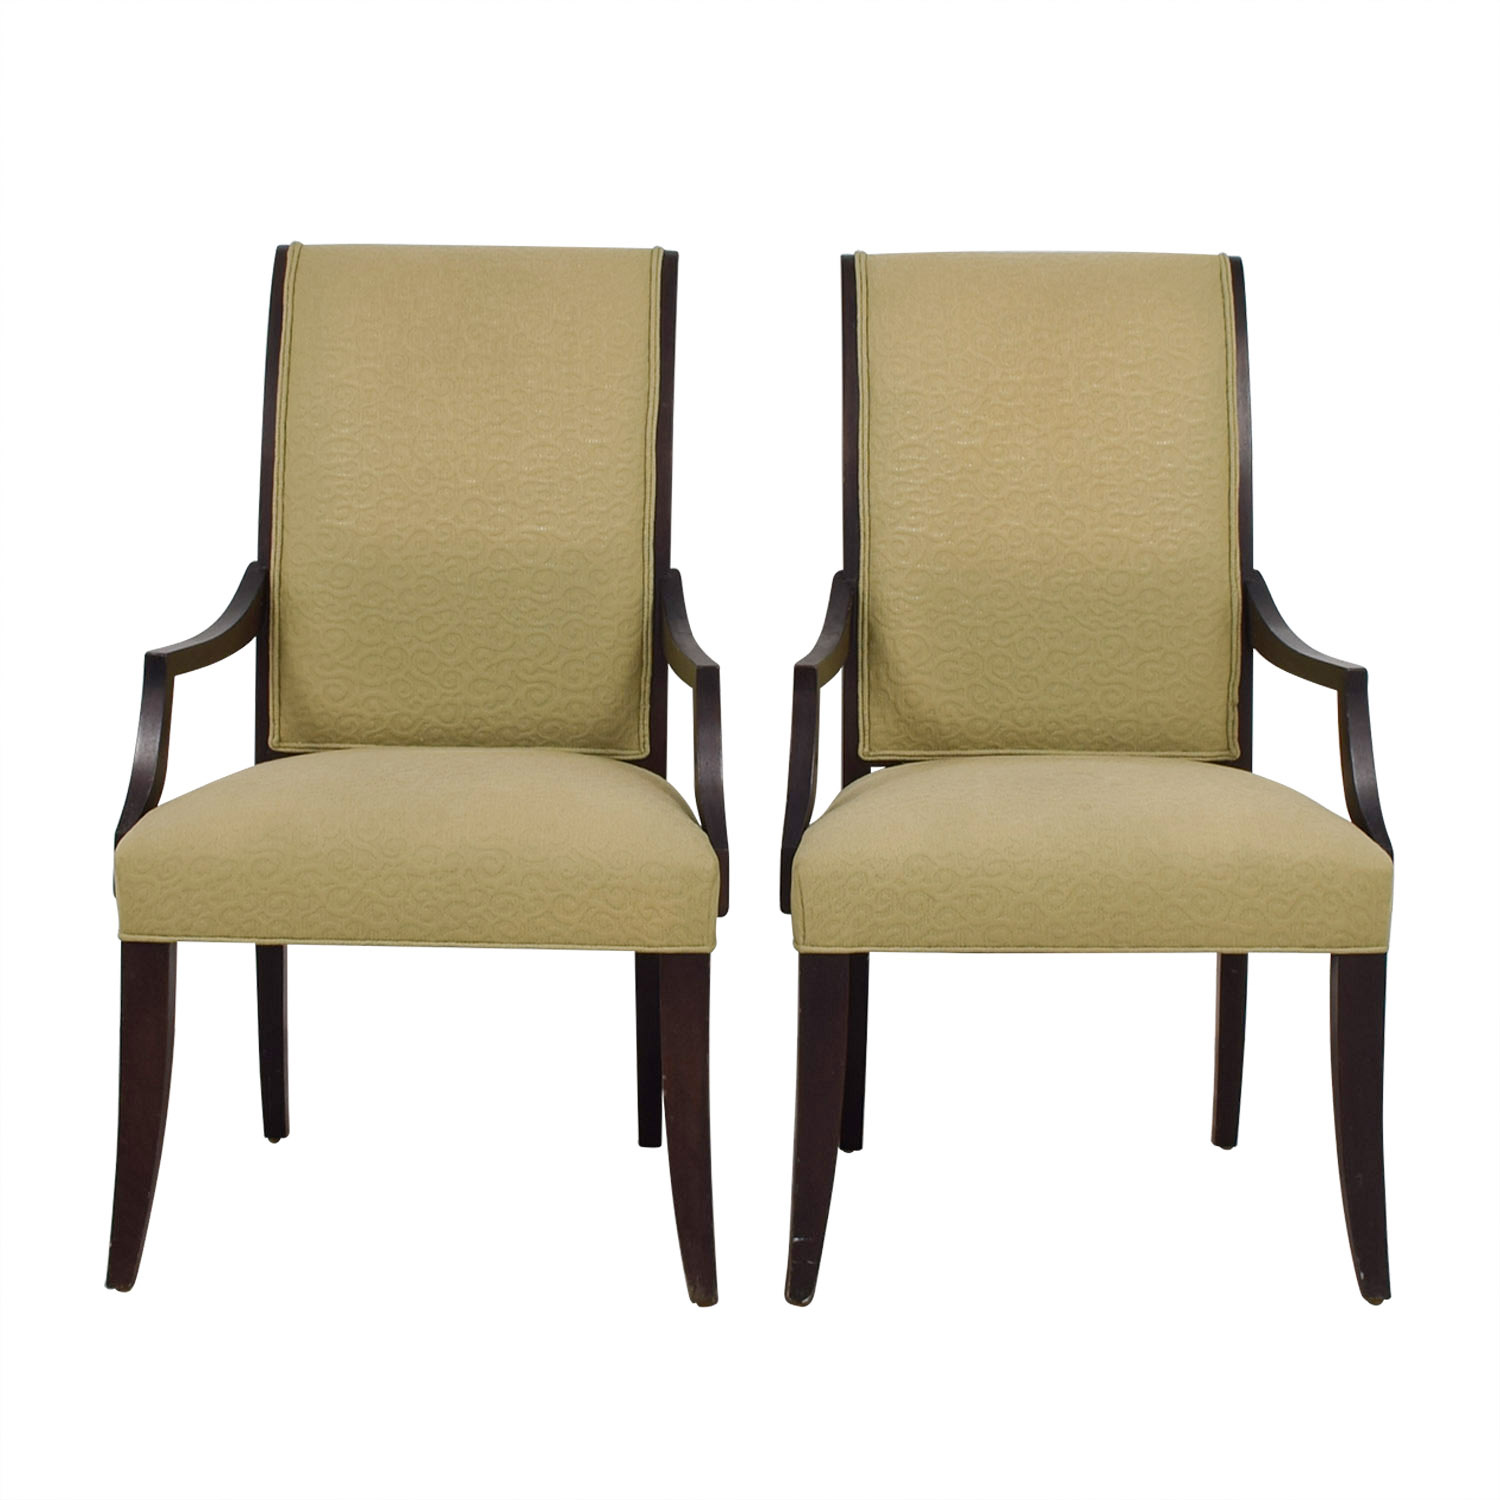 Ethan Allen Ethan Allen Beige Jacquard Upholstered Accent Chairs Accent Chairs